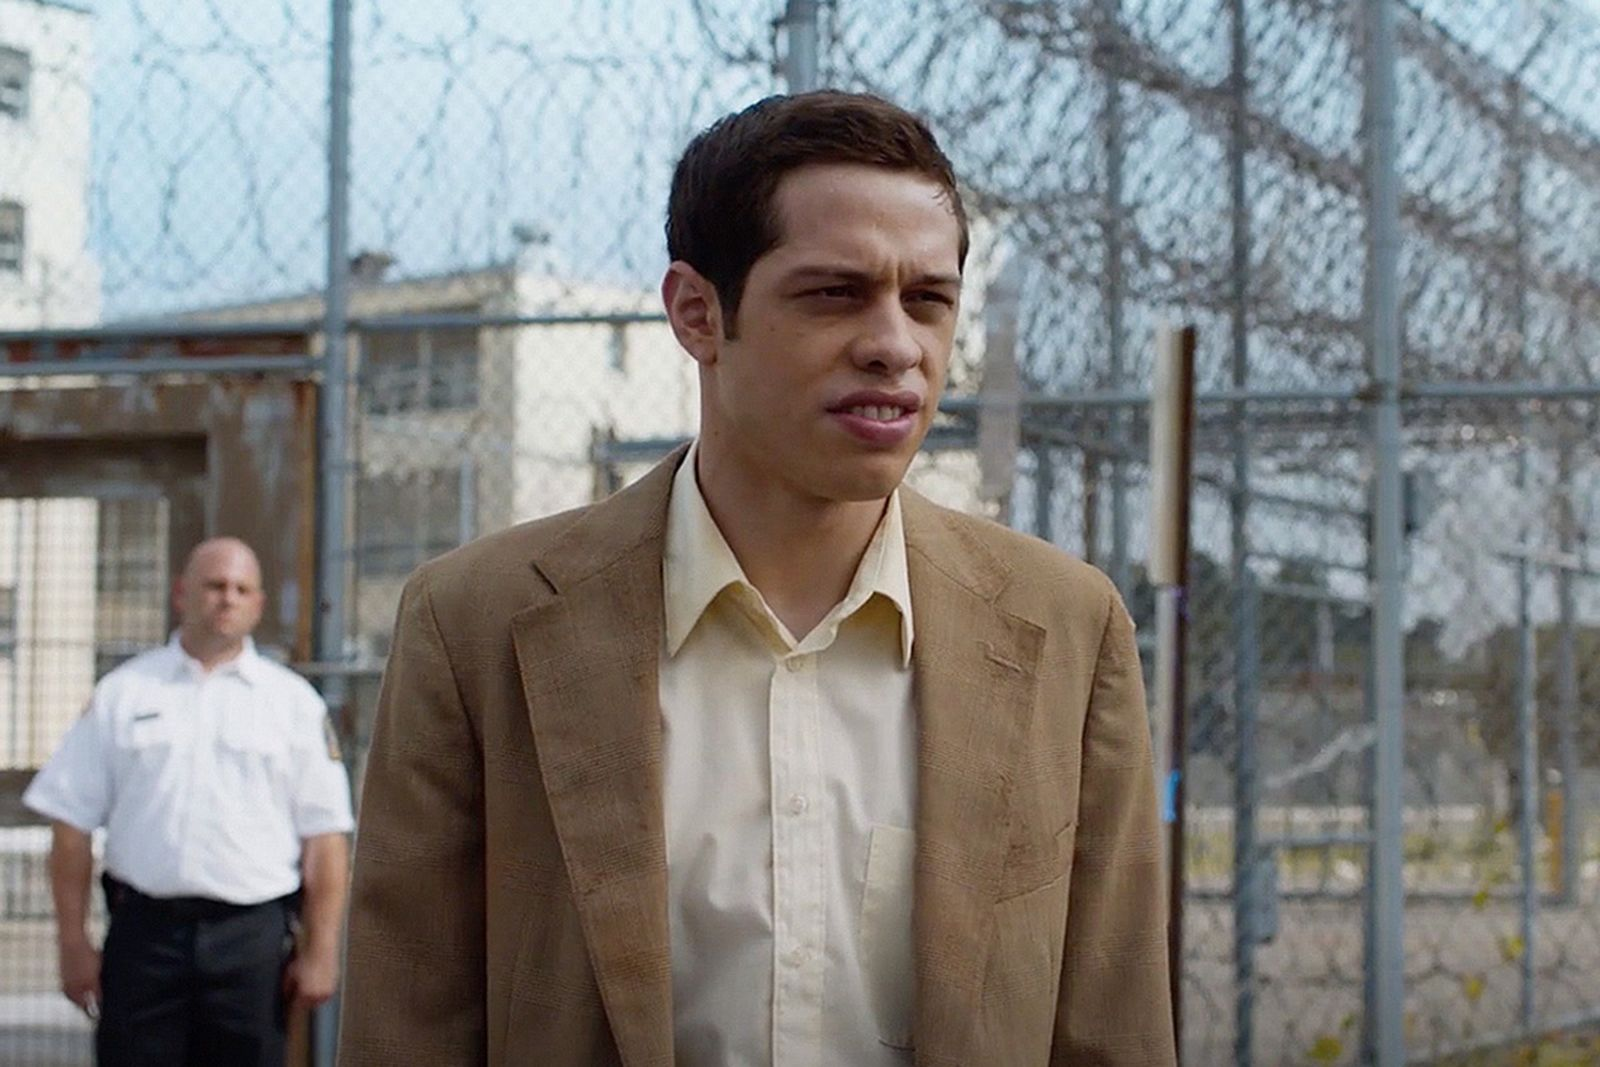 Pete Davidson outside prison 'The Jesus Rolls'